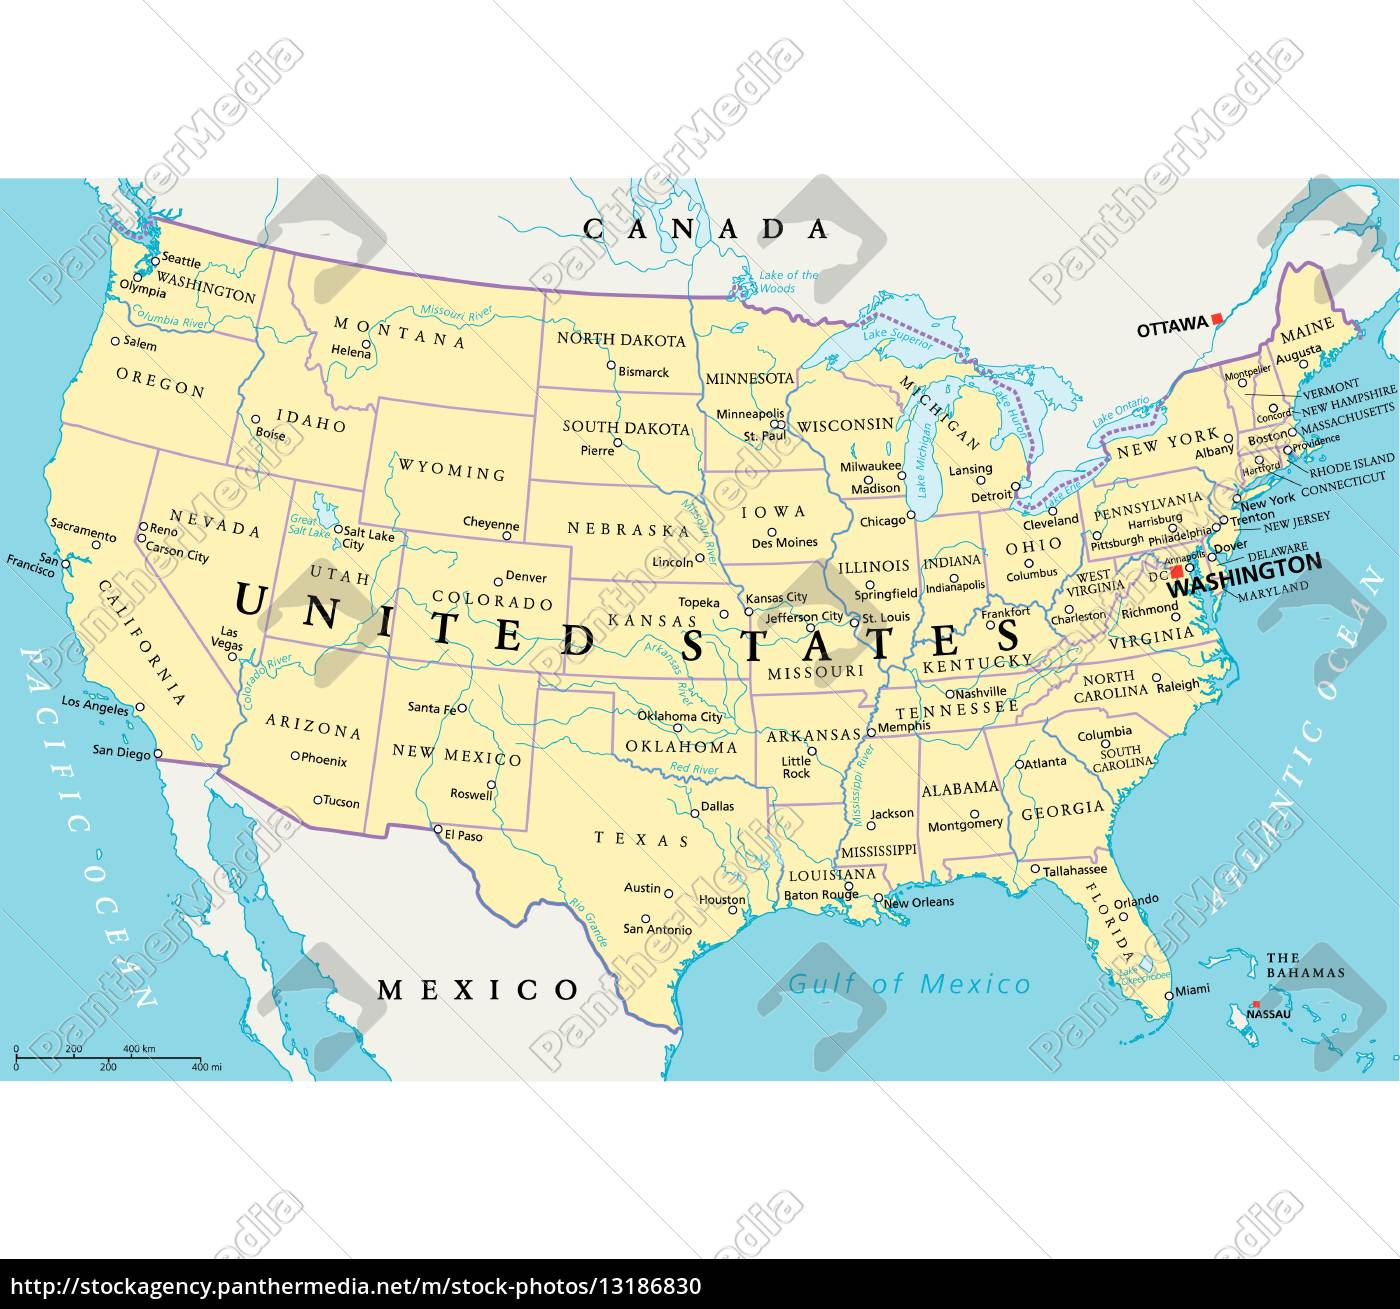 Royalty free vector 13186830 - United States of America Political Map